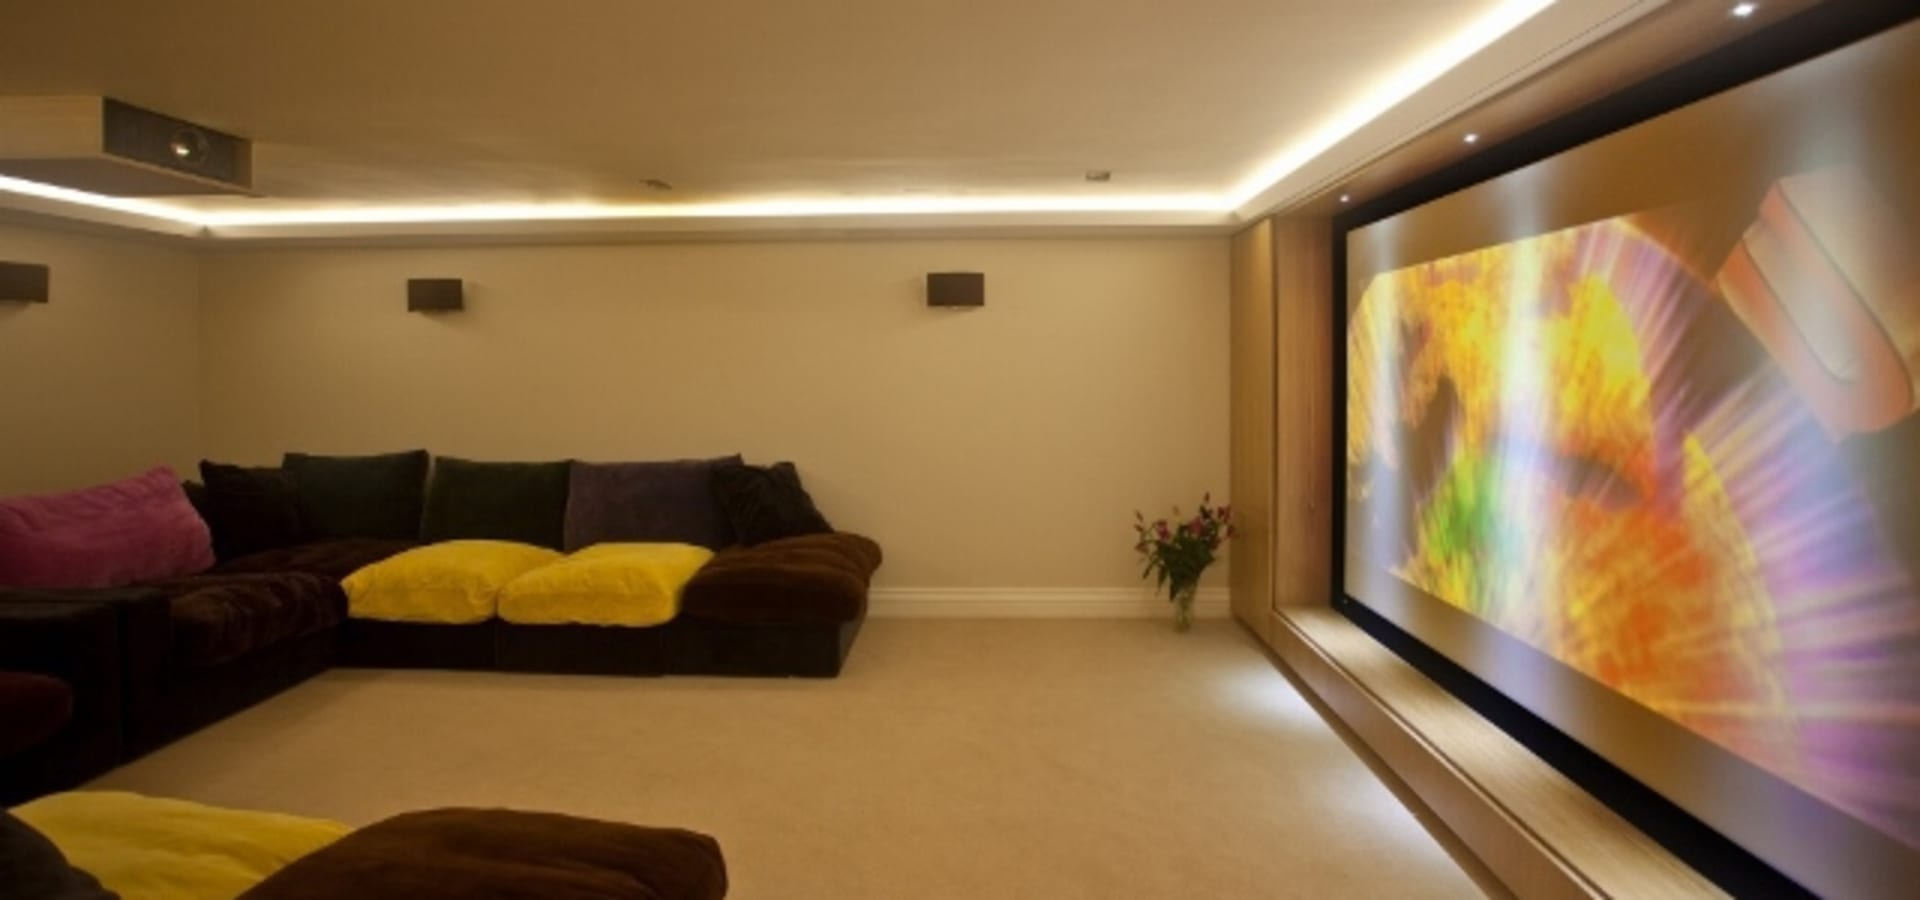 North Yorkshire Home Automation Lighting And Media